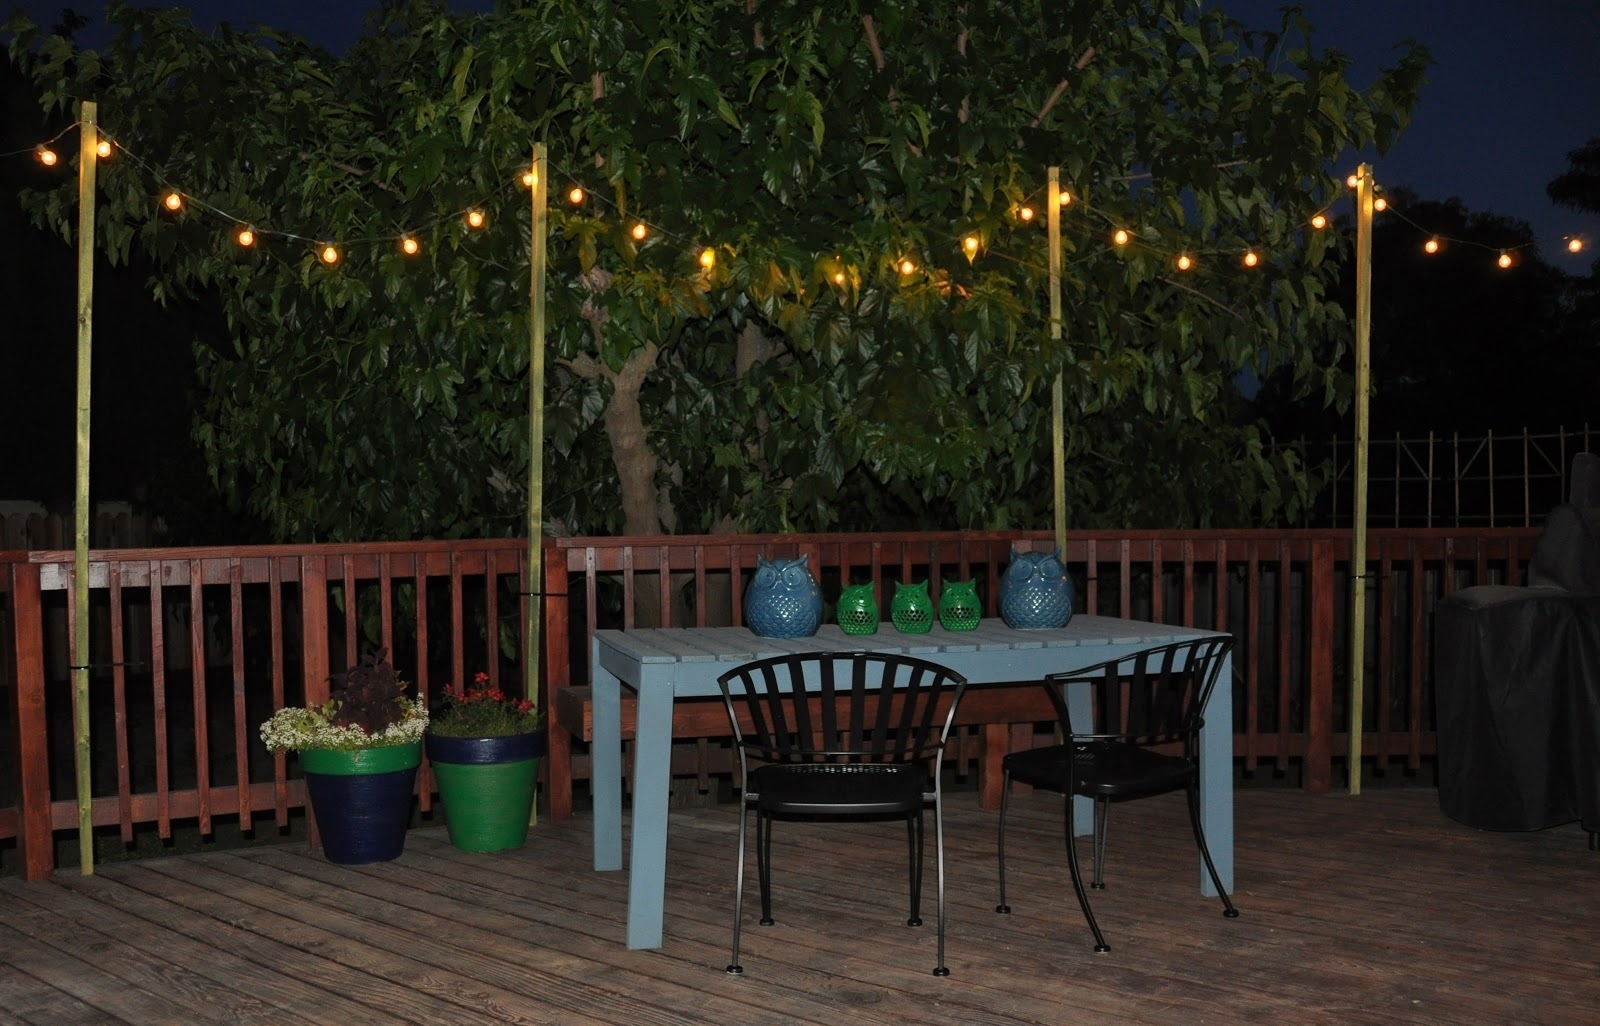 Inspiration about Diy : Outdoor Hanging String Lights Within Patio Withi Solar Outdoor Pertaining To Solar Hanging Outdoor Patio Lights (#3 of 15)